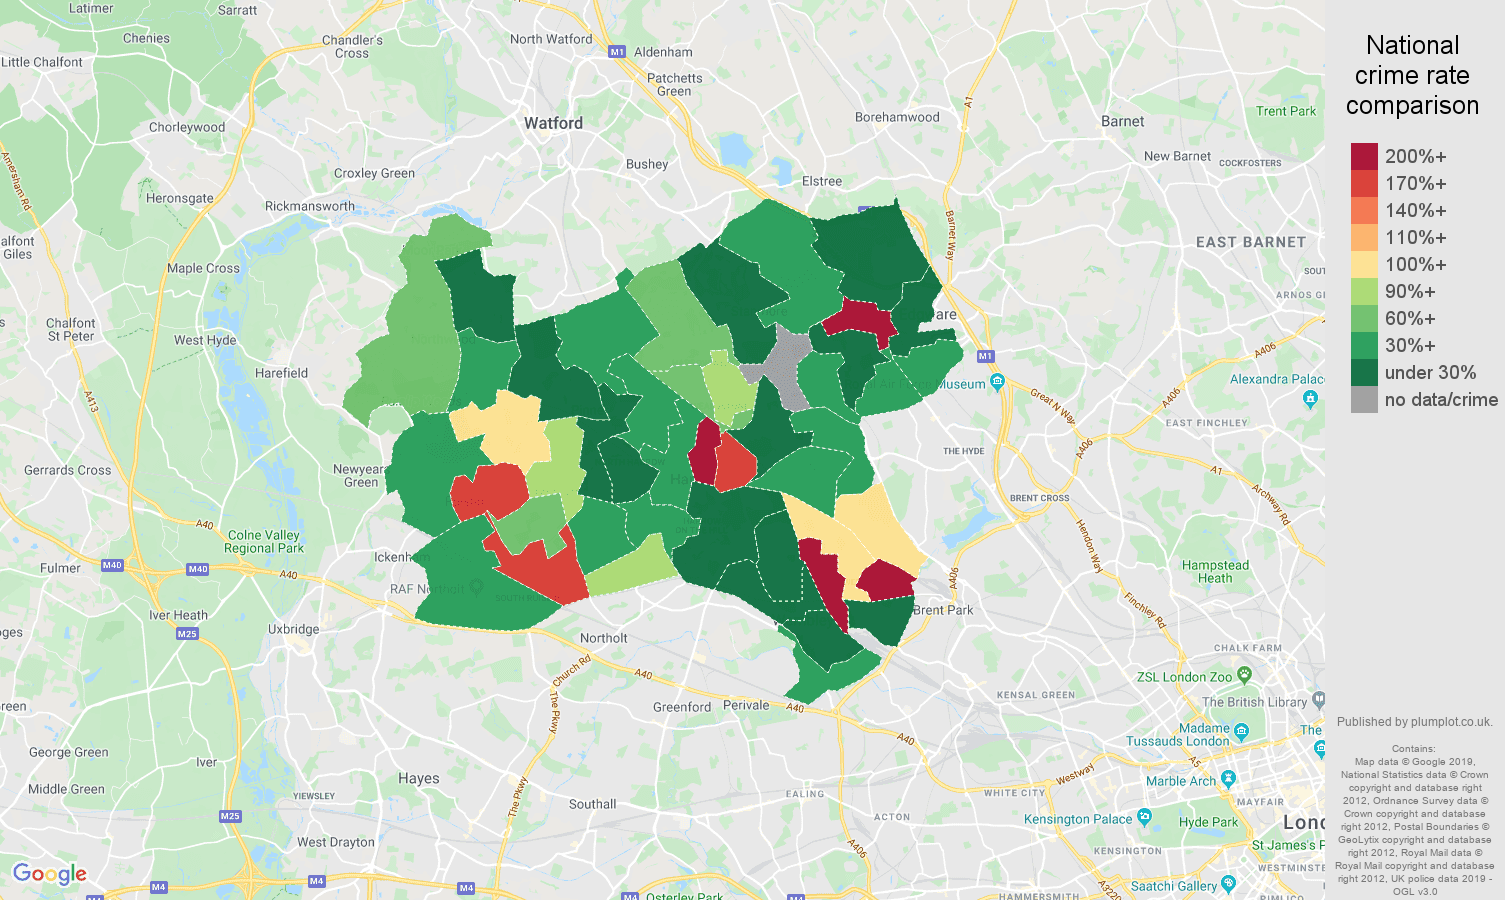 Harrow shoplifting crime rate comparison map